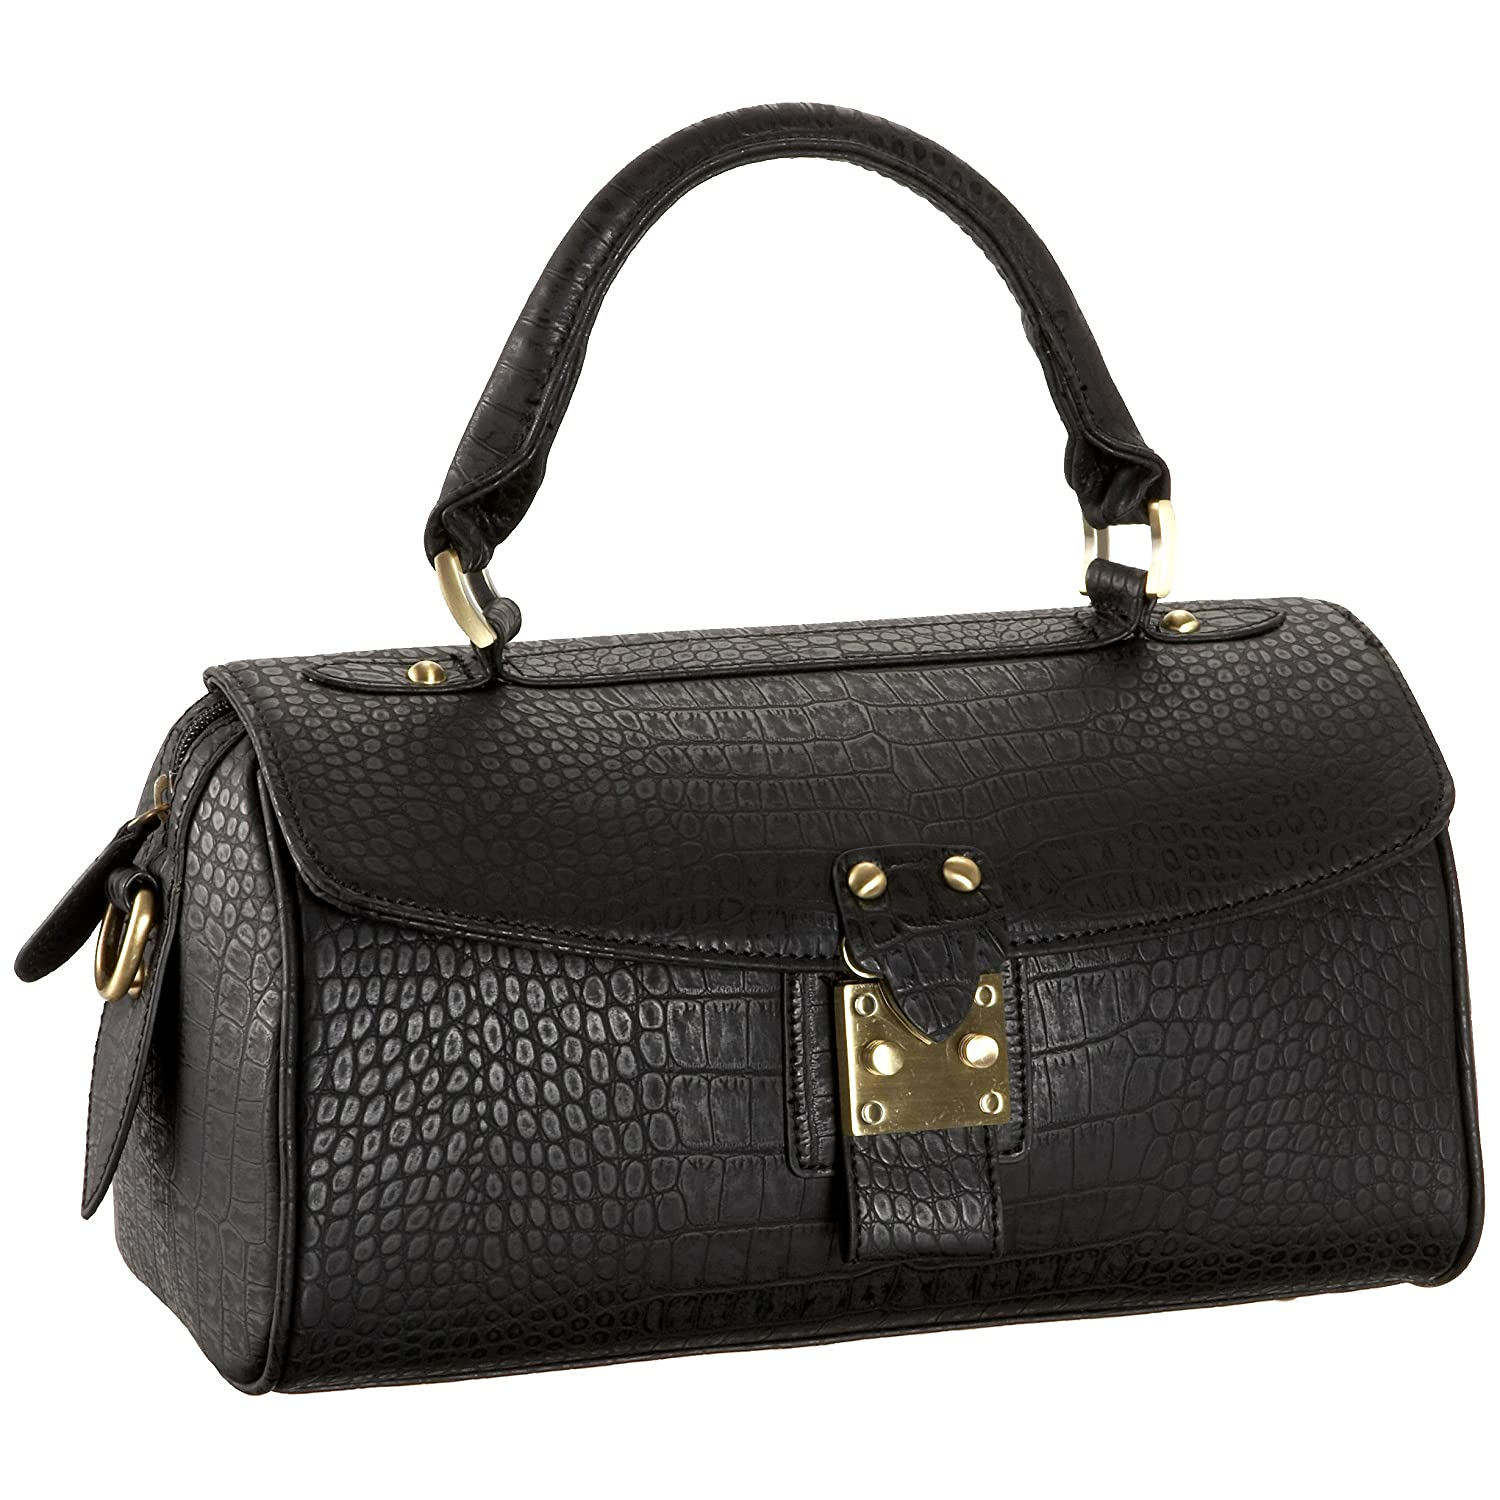 High Fashion Handbags - Croc-Embossed Satchel :  handbag bag faux leather accessories